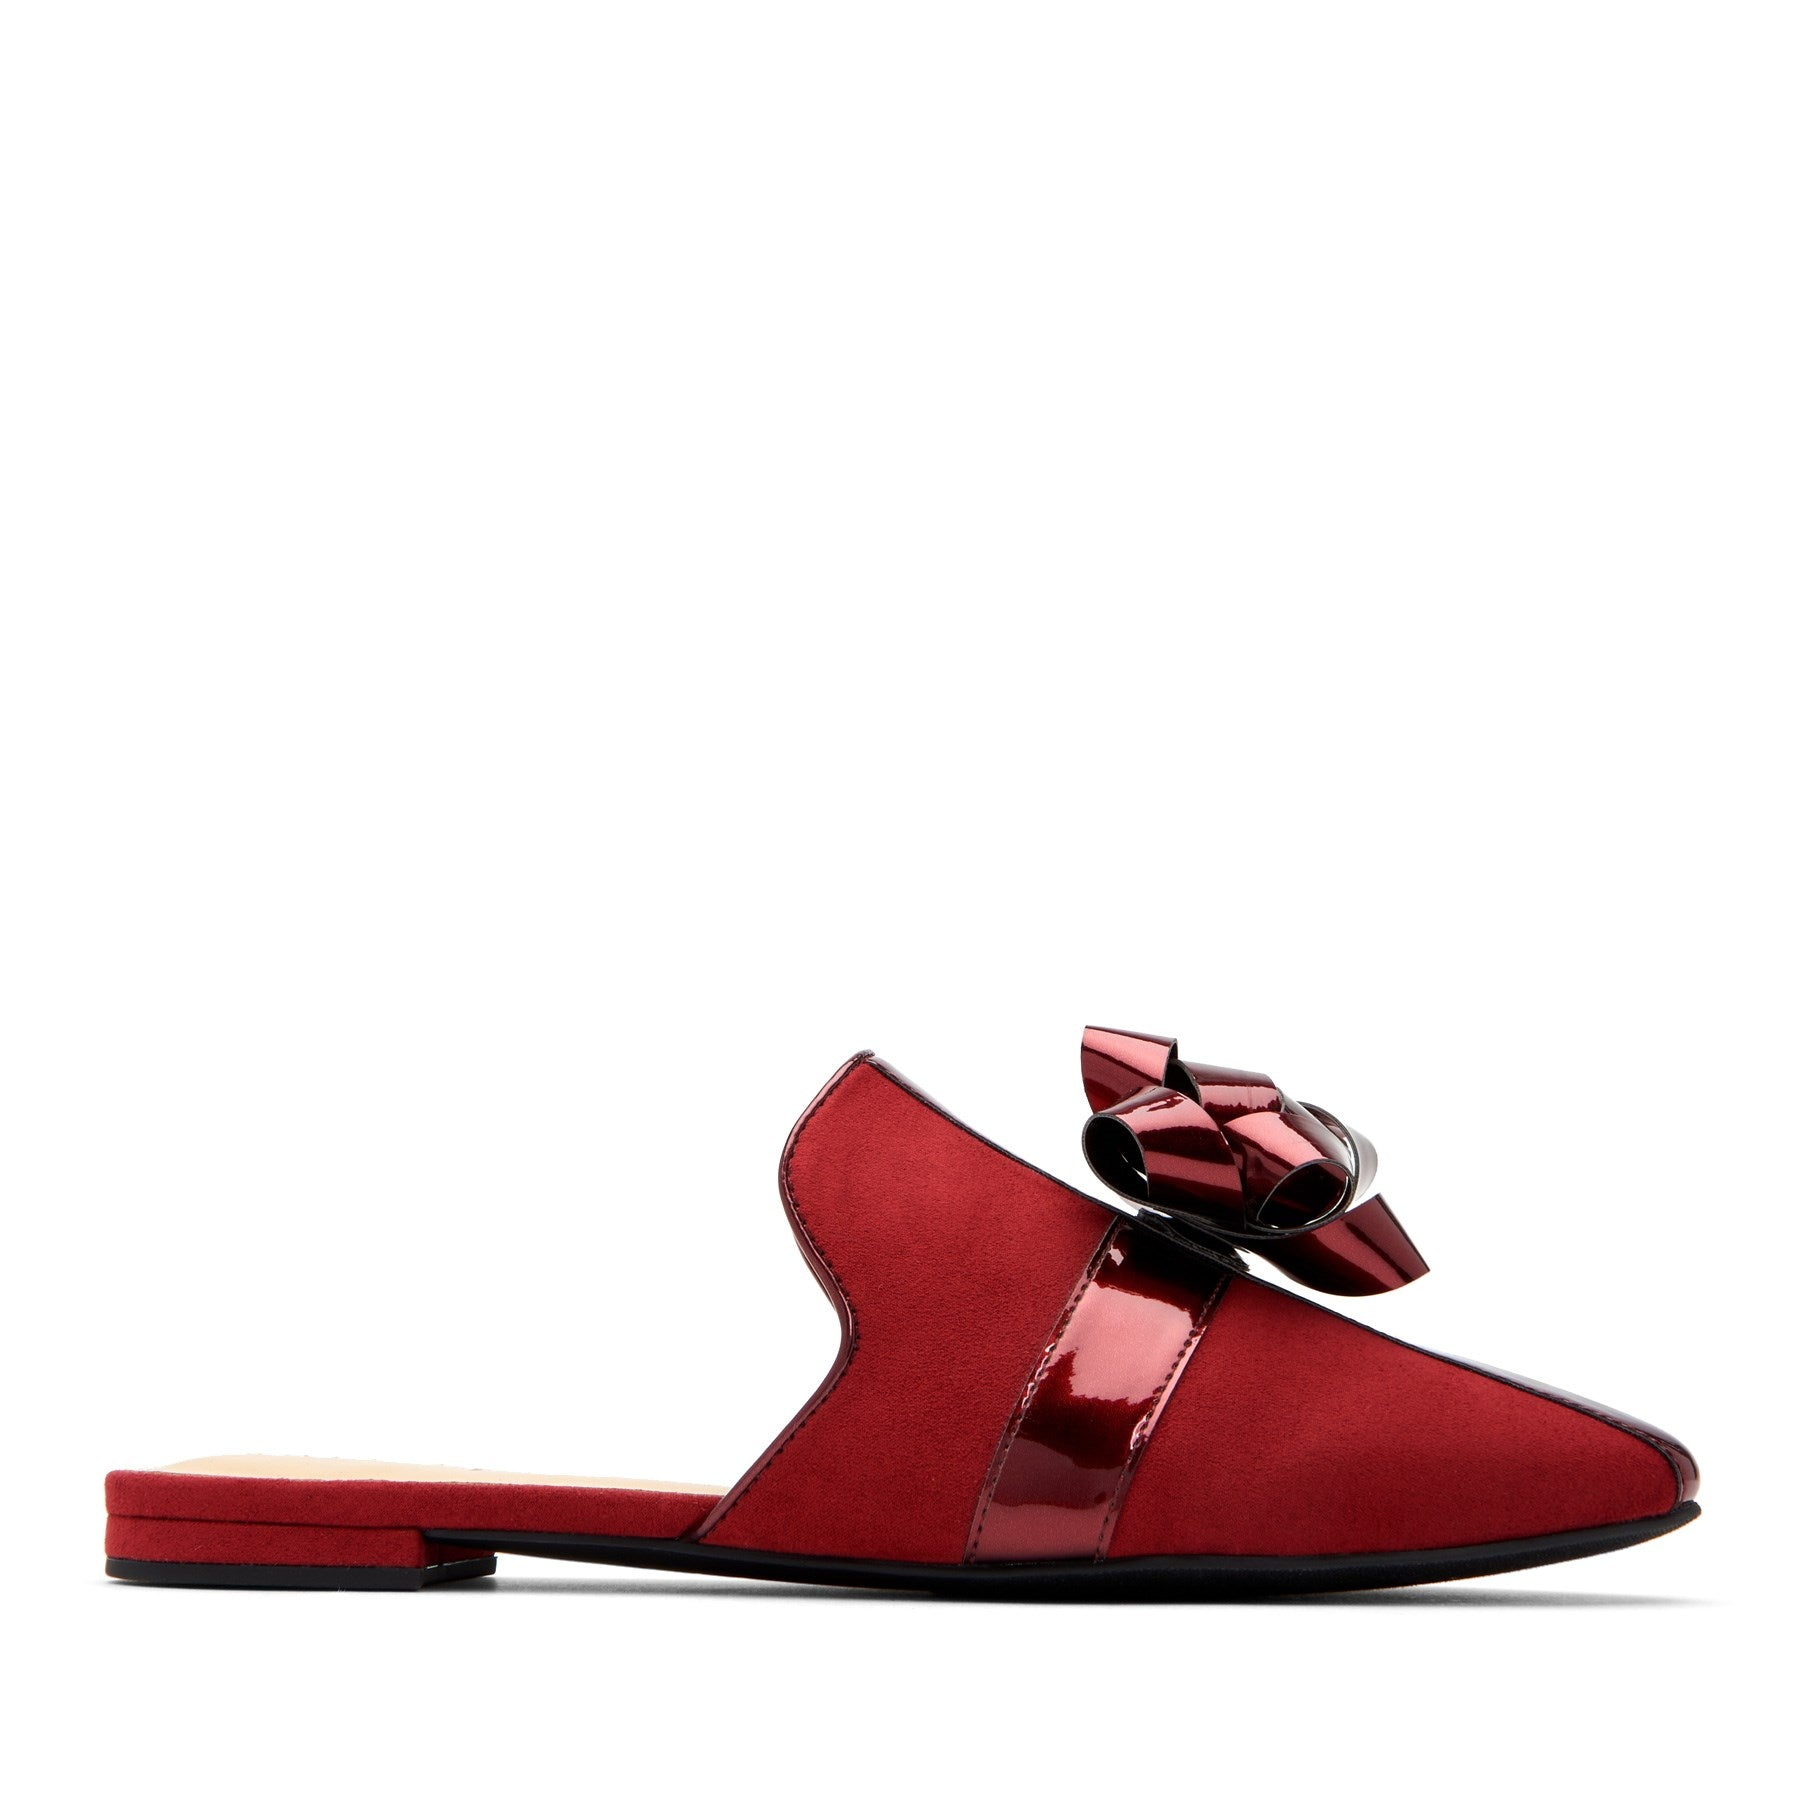 katy perry mule in mulberry size 5   the stephanie